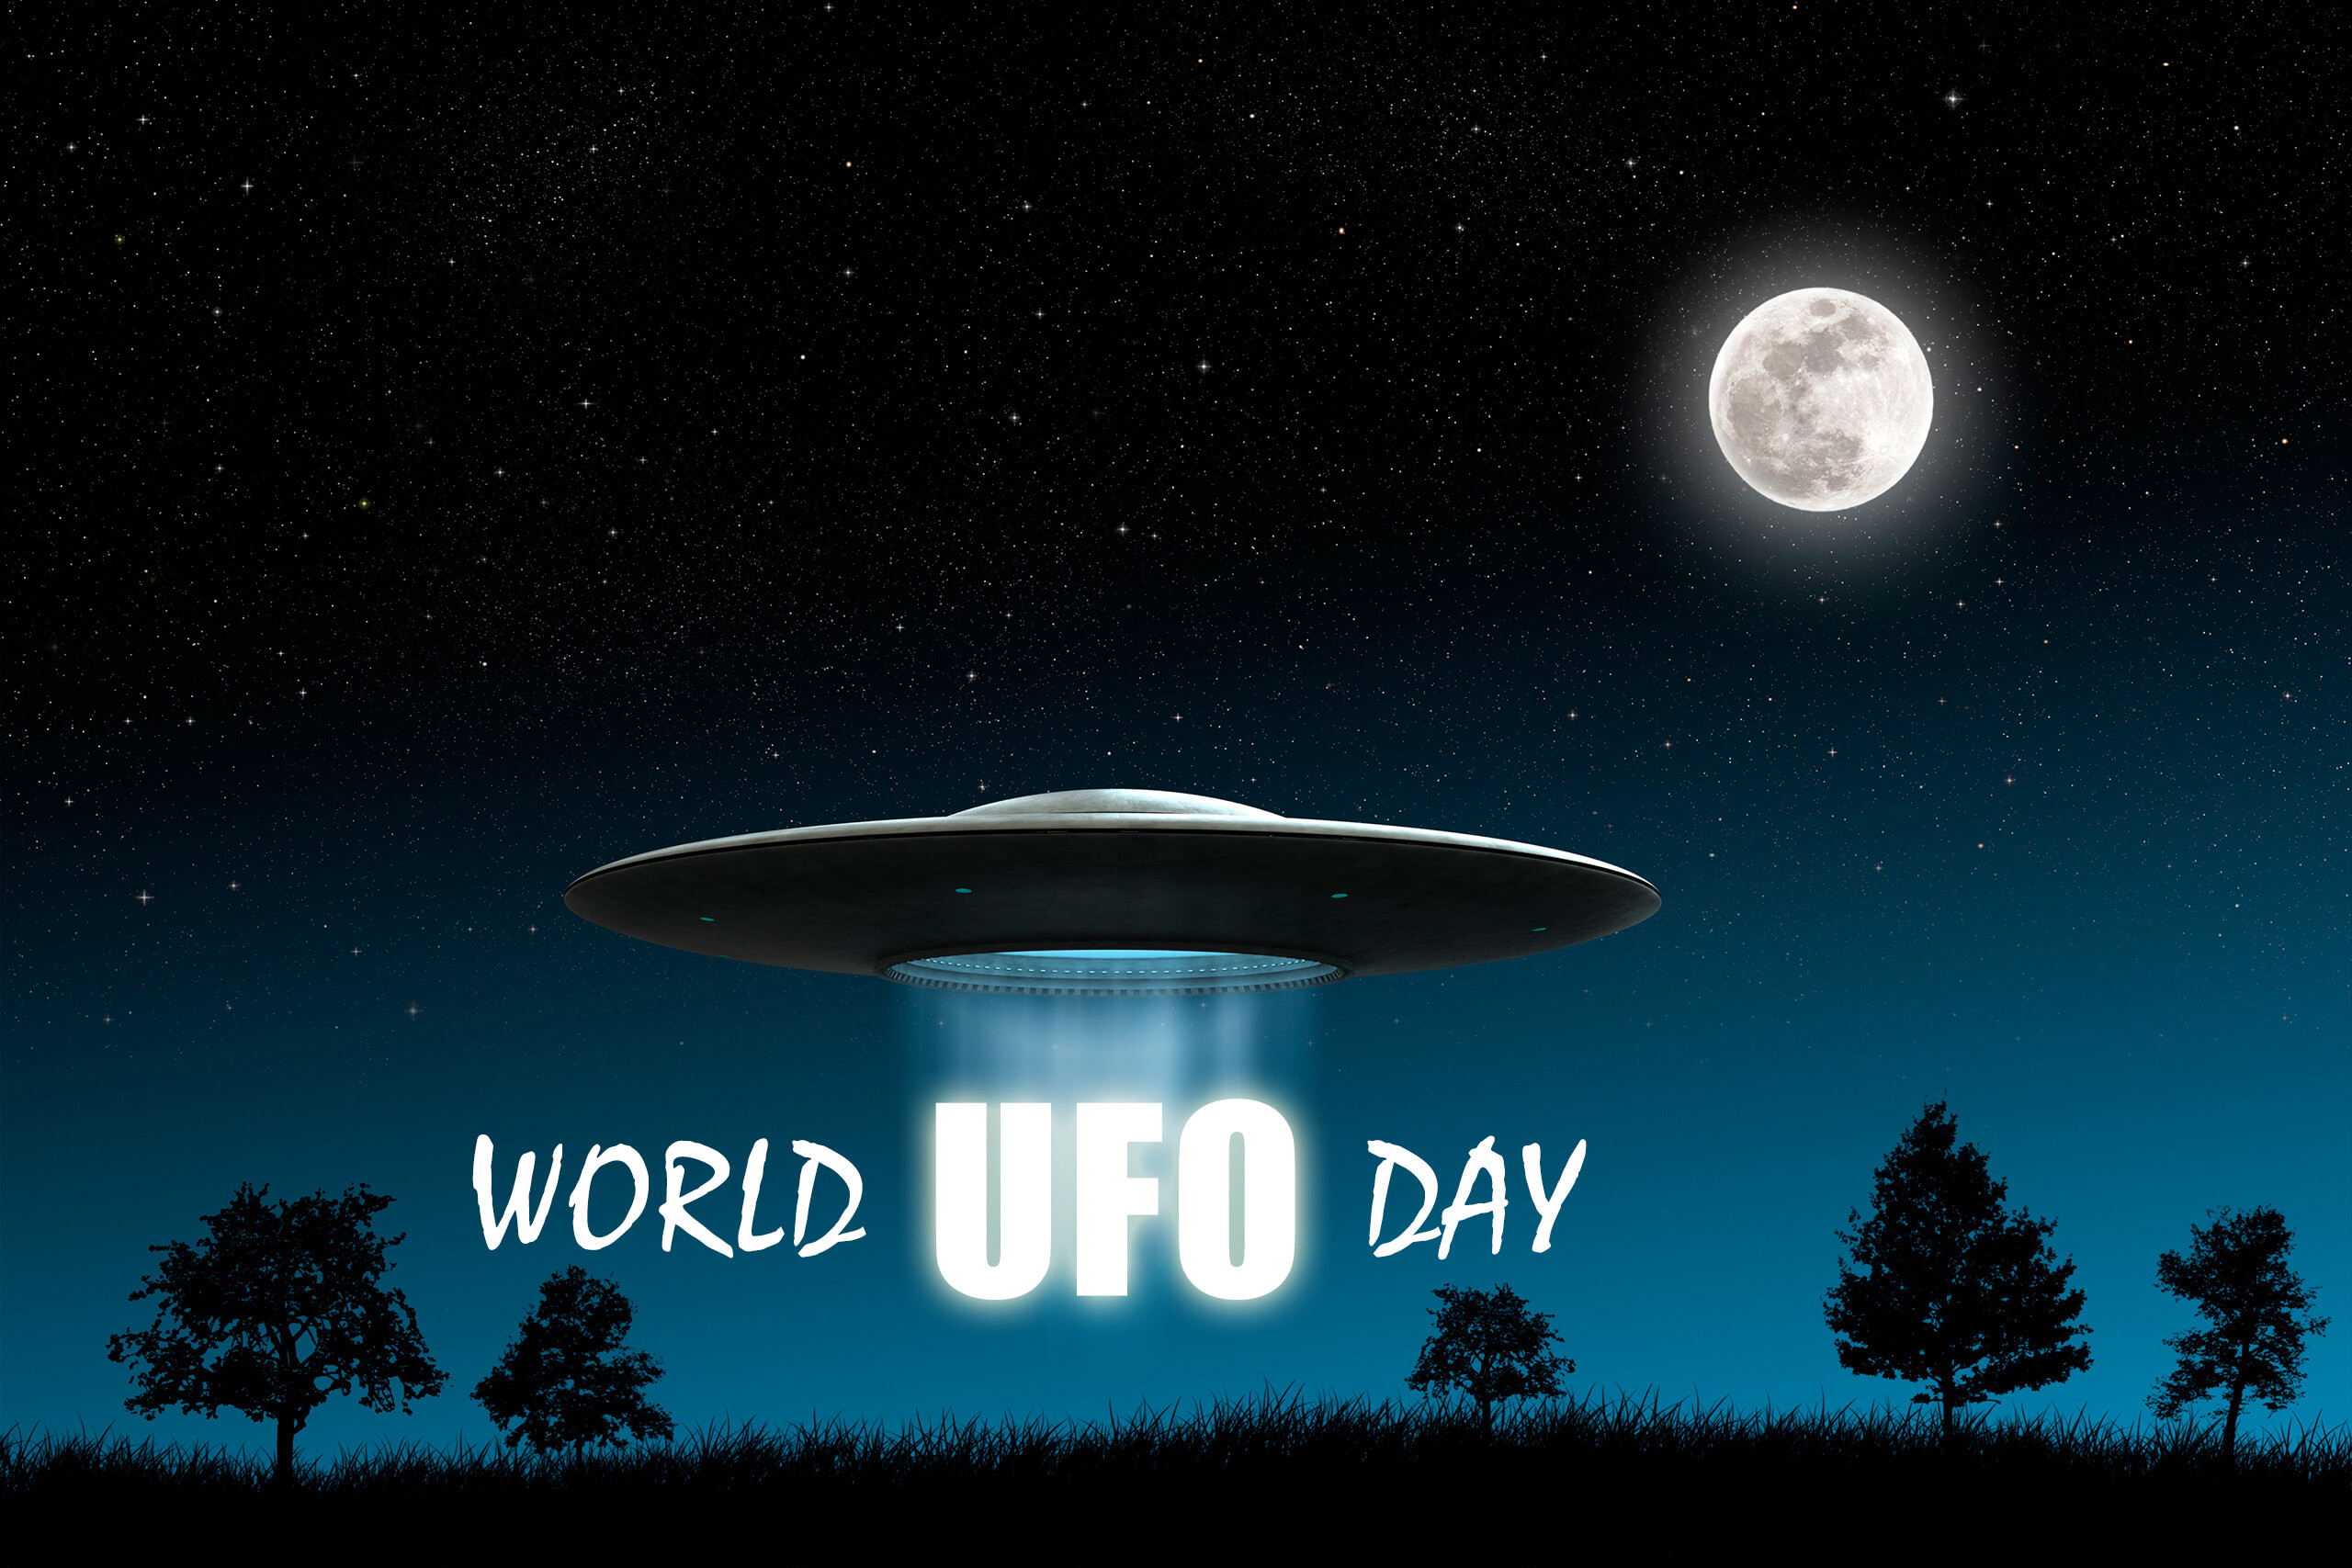 world ufo day unidentified flying object space saucer hd wallpaper